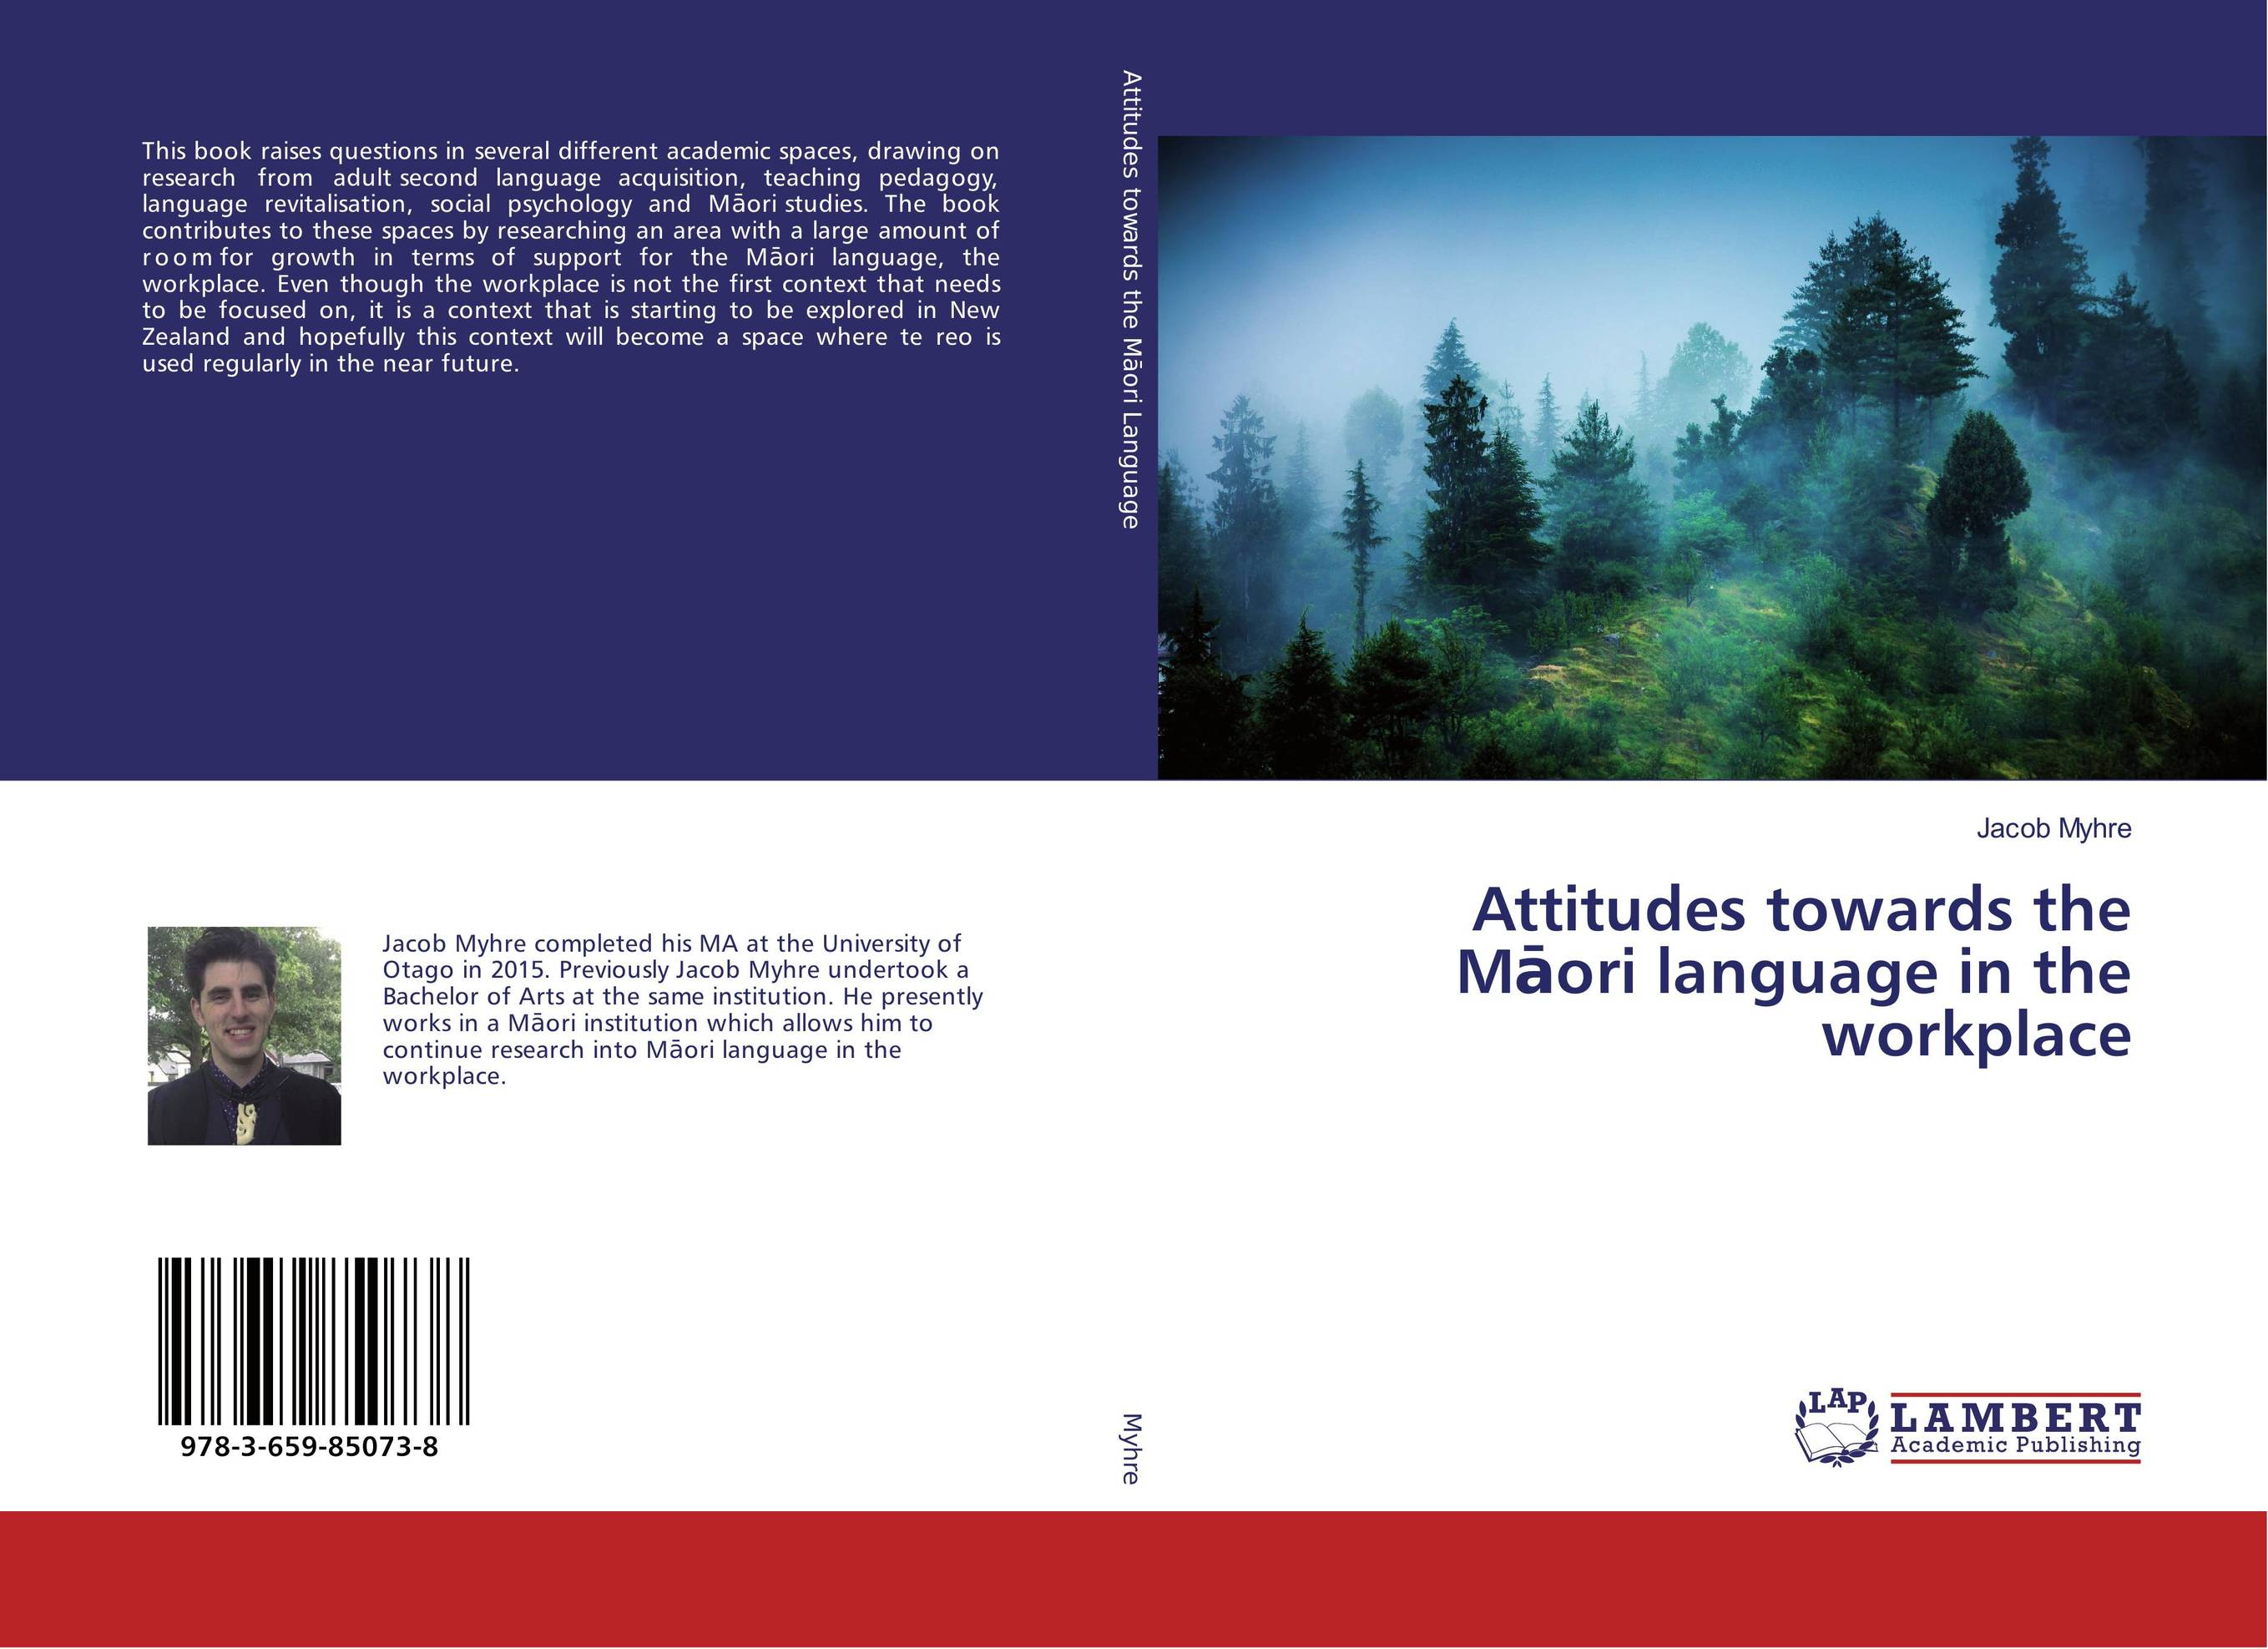 Attitudes towards the Maori language in the workplace zoltan dornyei the psychology of second language acquisition